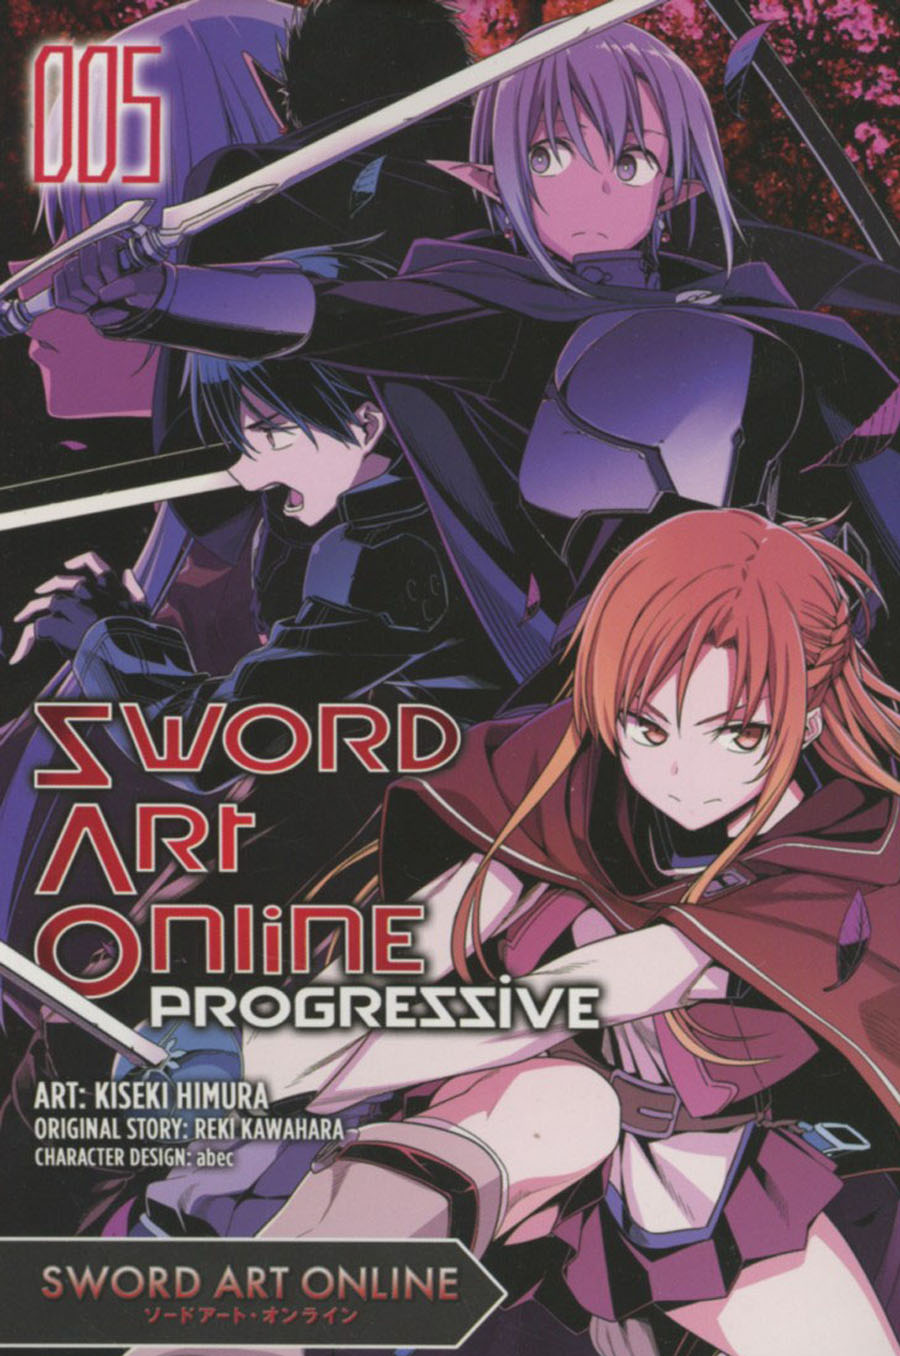 Sword Art Online Progressive Vol 5 GN